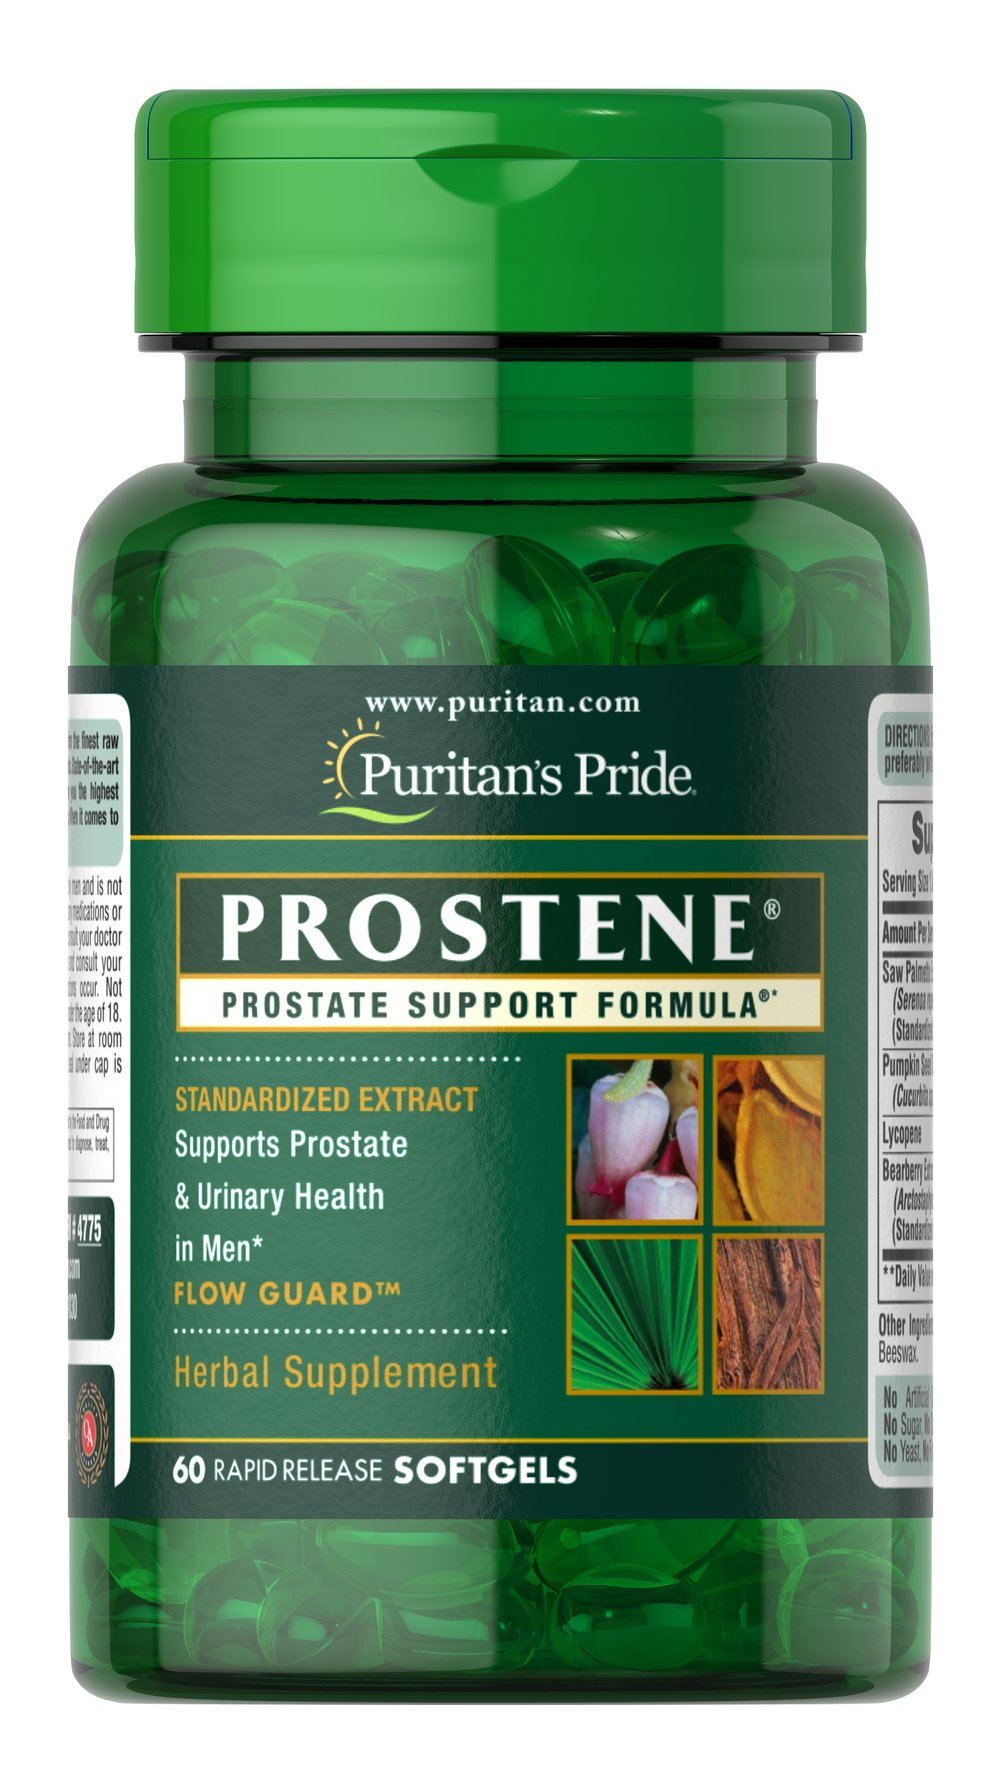 Prostene® Prostate Support Formula® <p>Two of the most popular natural ingredients (Saw Palmetto & Lycopene) are combined into one powerful prostate-supporting formula. Saw Palmetto Extract (80 mg) has been recommended for men for decades. Lycopene (3 mg) is a much publicized antioxidant from tomatoes. Prostene softgels also contain: Pumpkin Seed Oil (80 mg), Pygeum (10 mg), and Uva Ursi (5 mg) for extra power.</p> 60 Softgels  $15.39